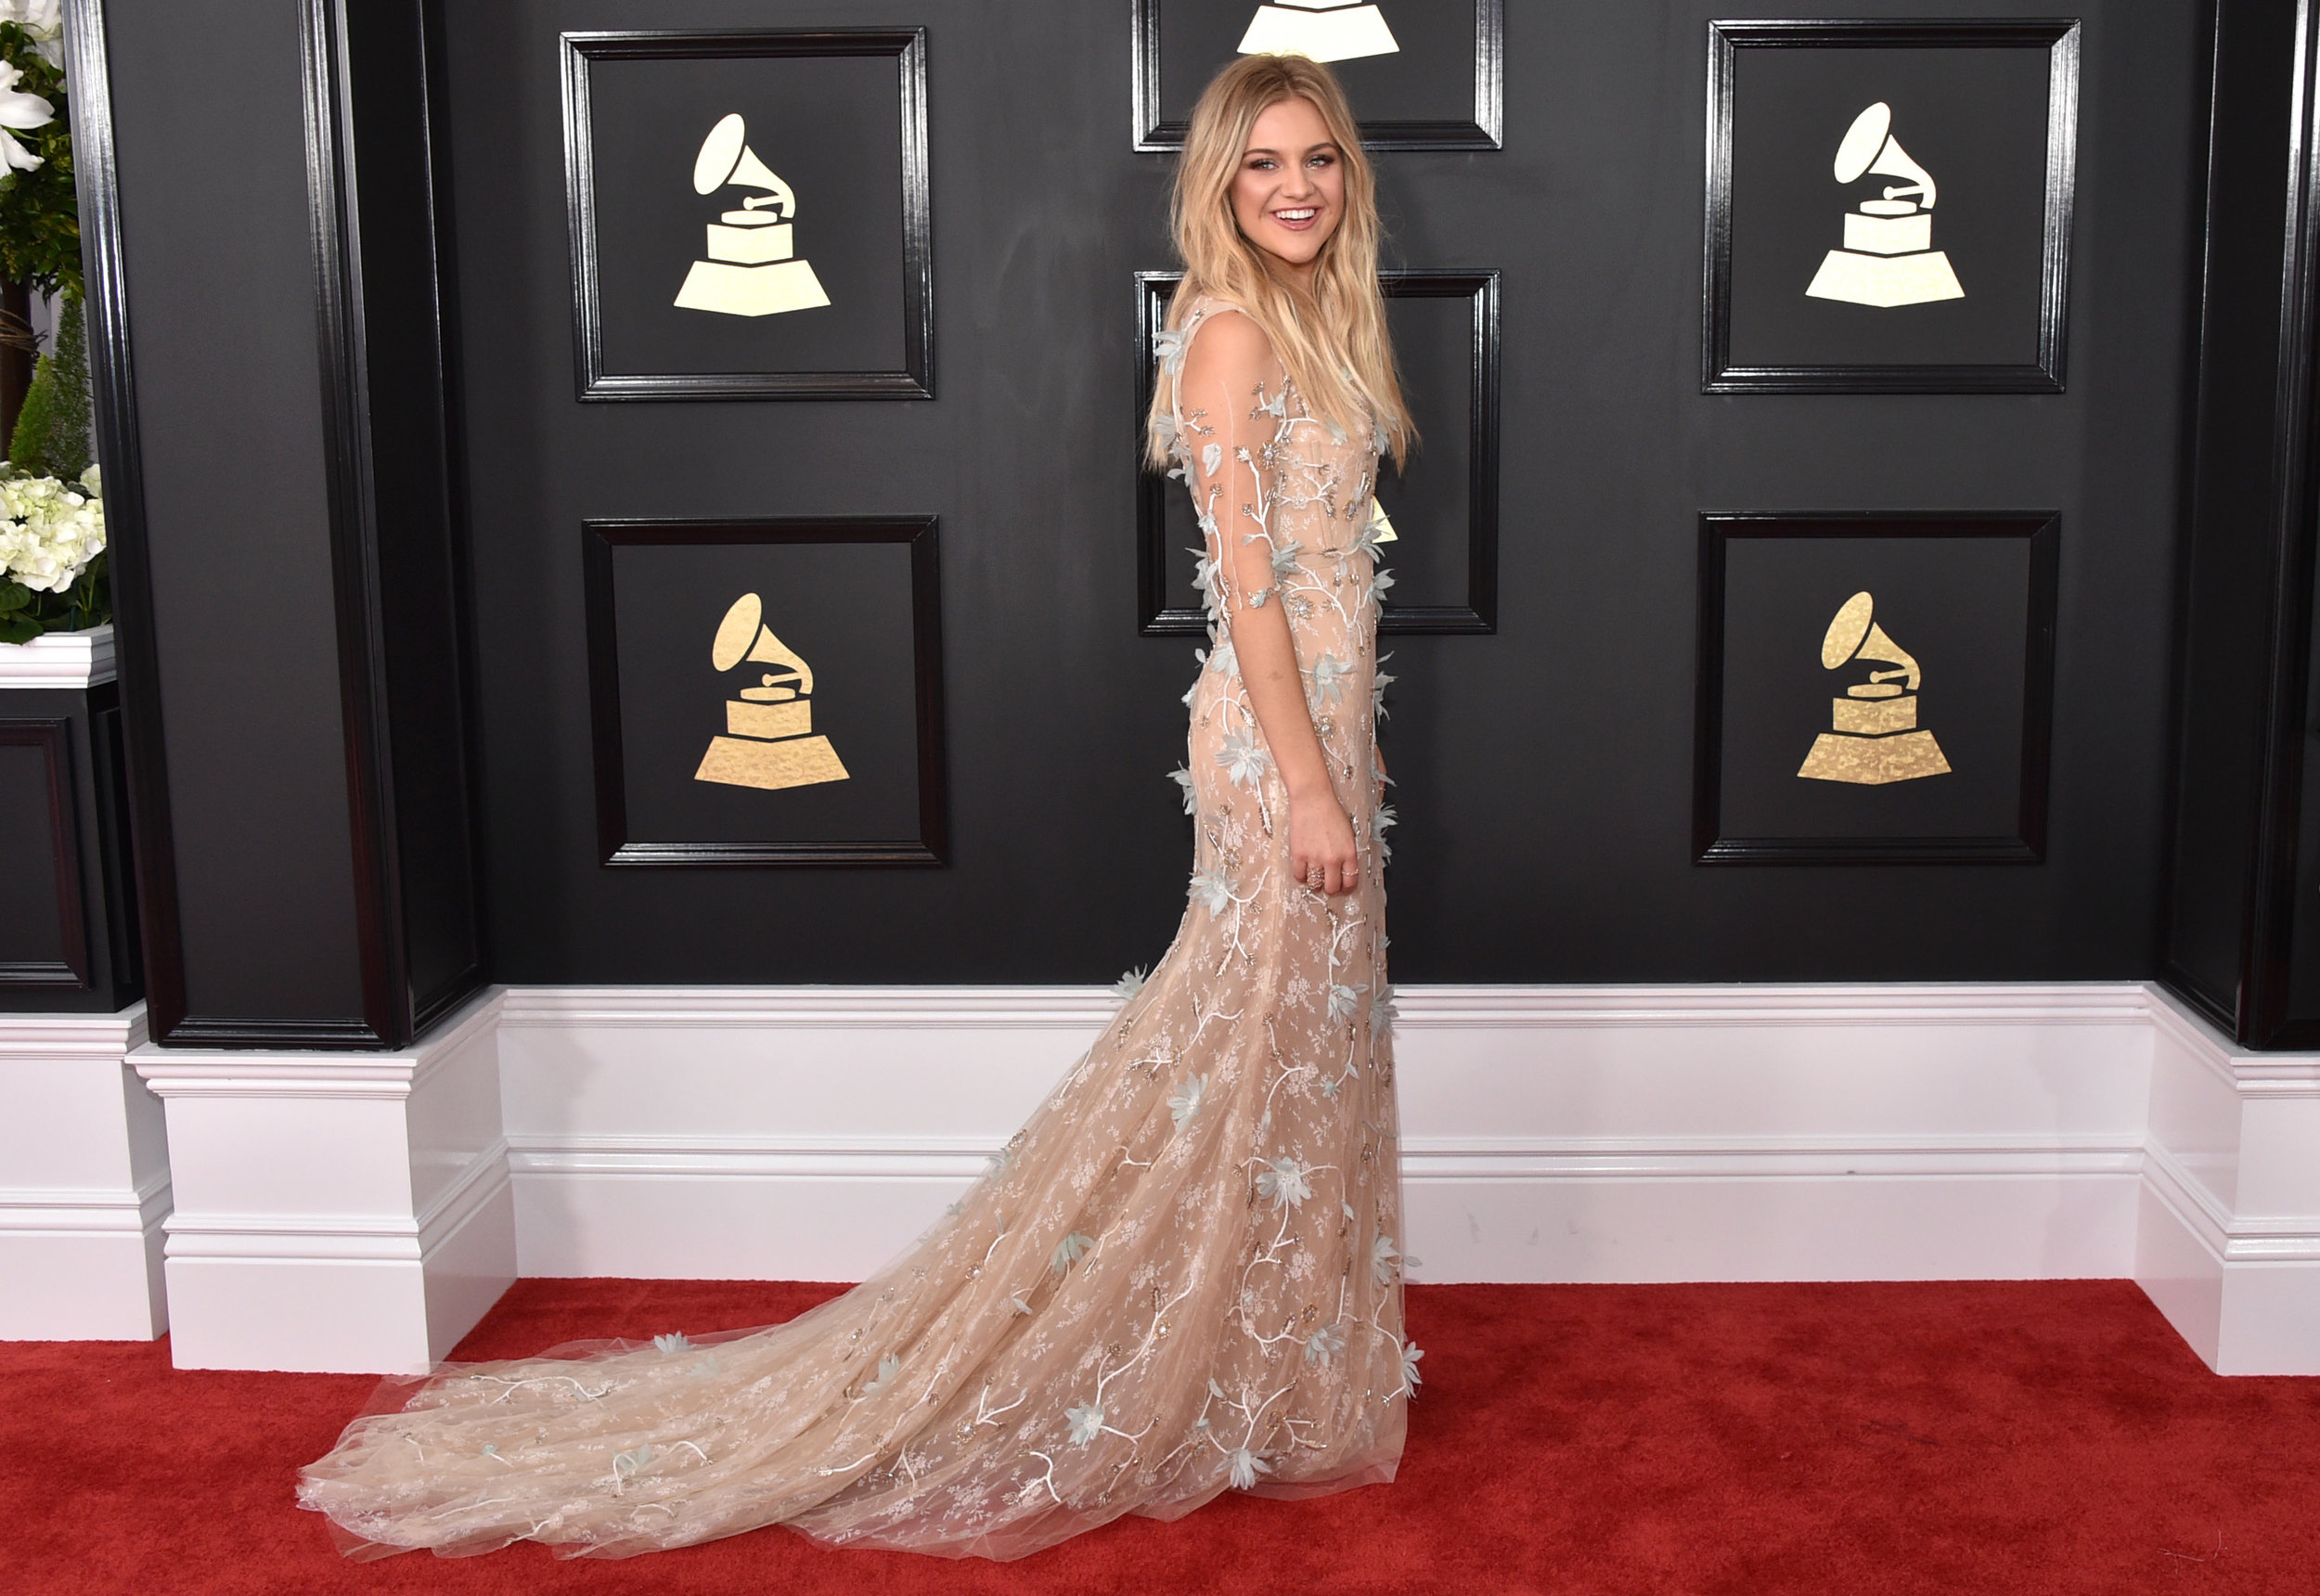 Kelsea Red Carpet Grammys 2017.jpg